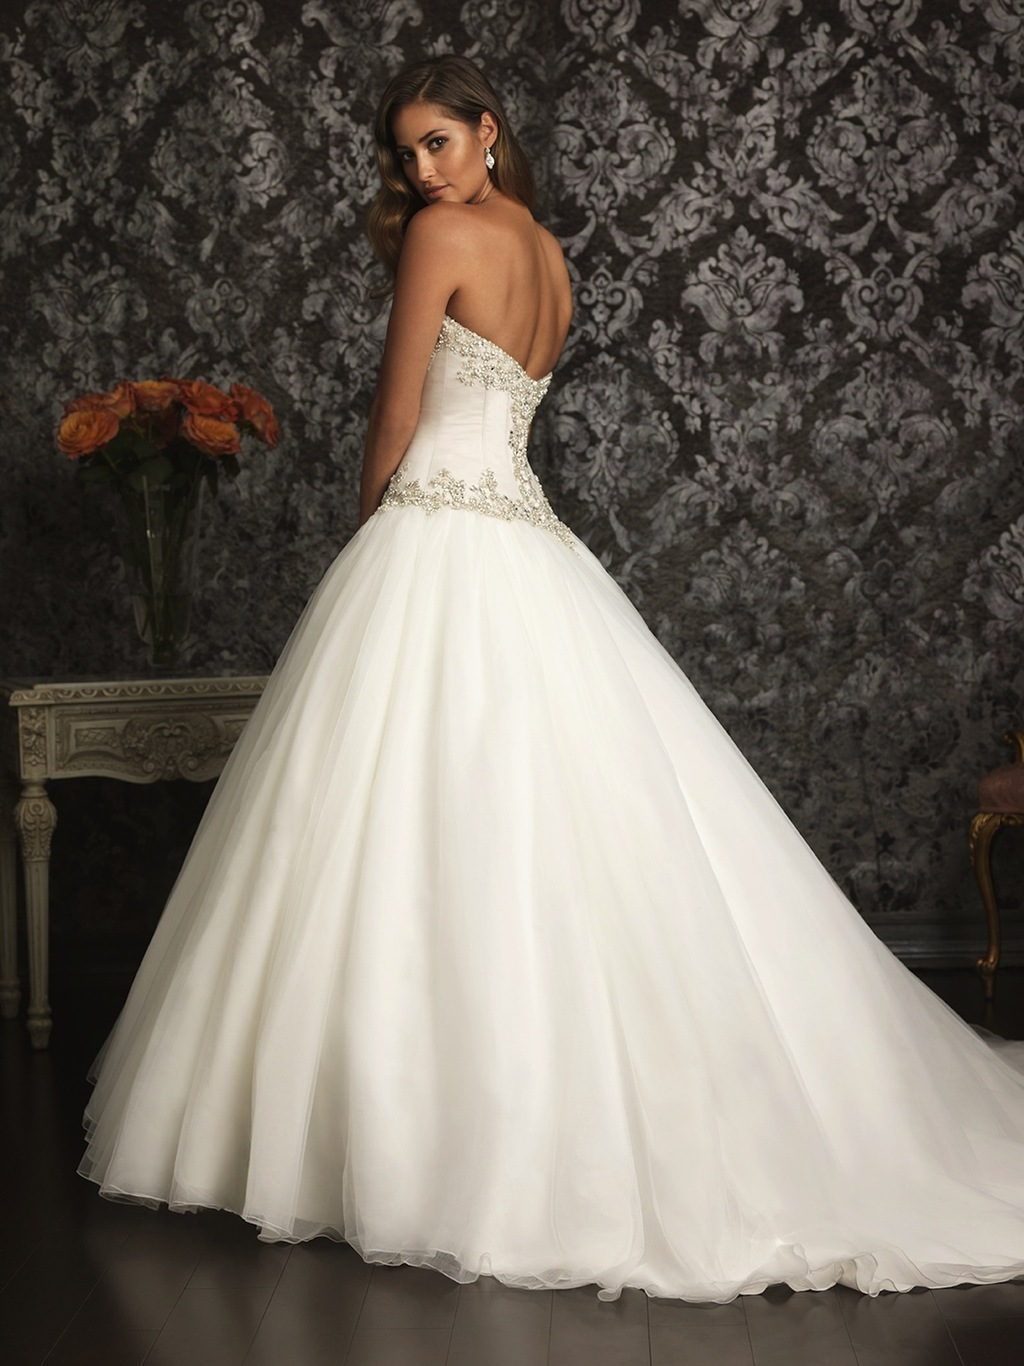 Allure-bridals-wedding-dress-bridal-gown-allure-collection-2013-9017b2.full